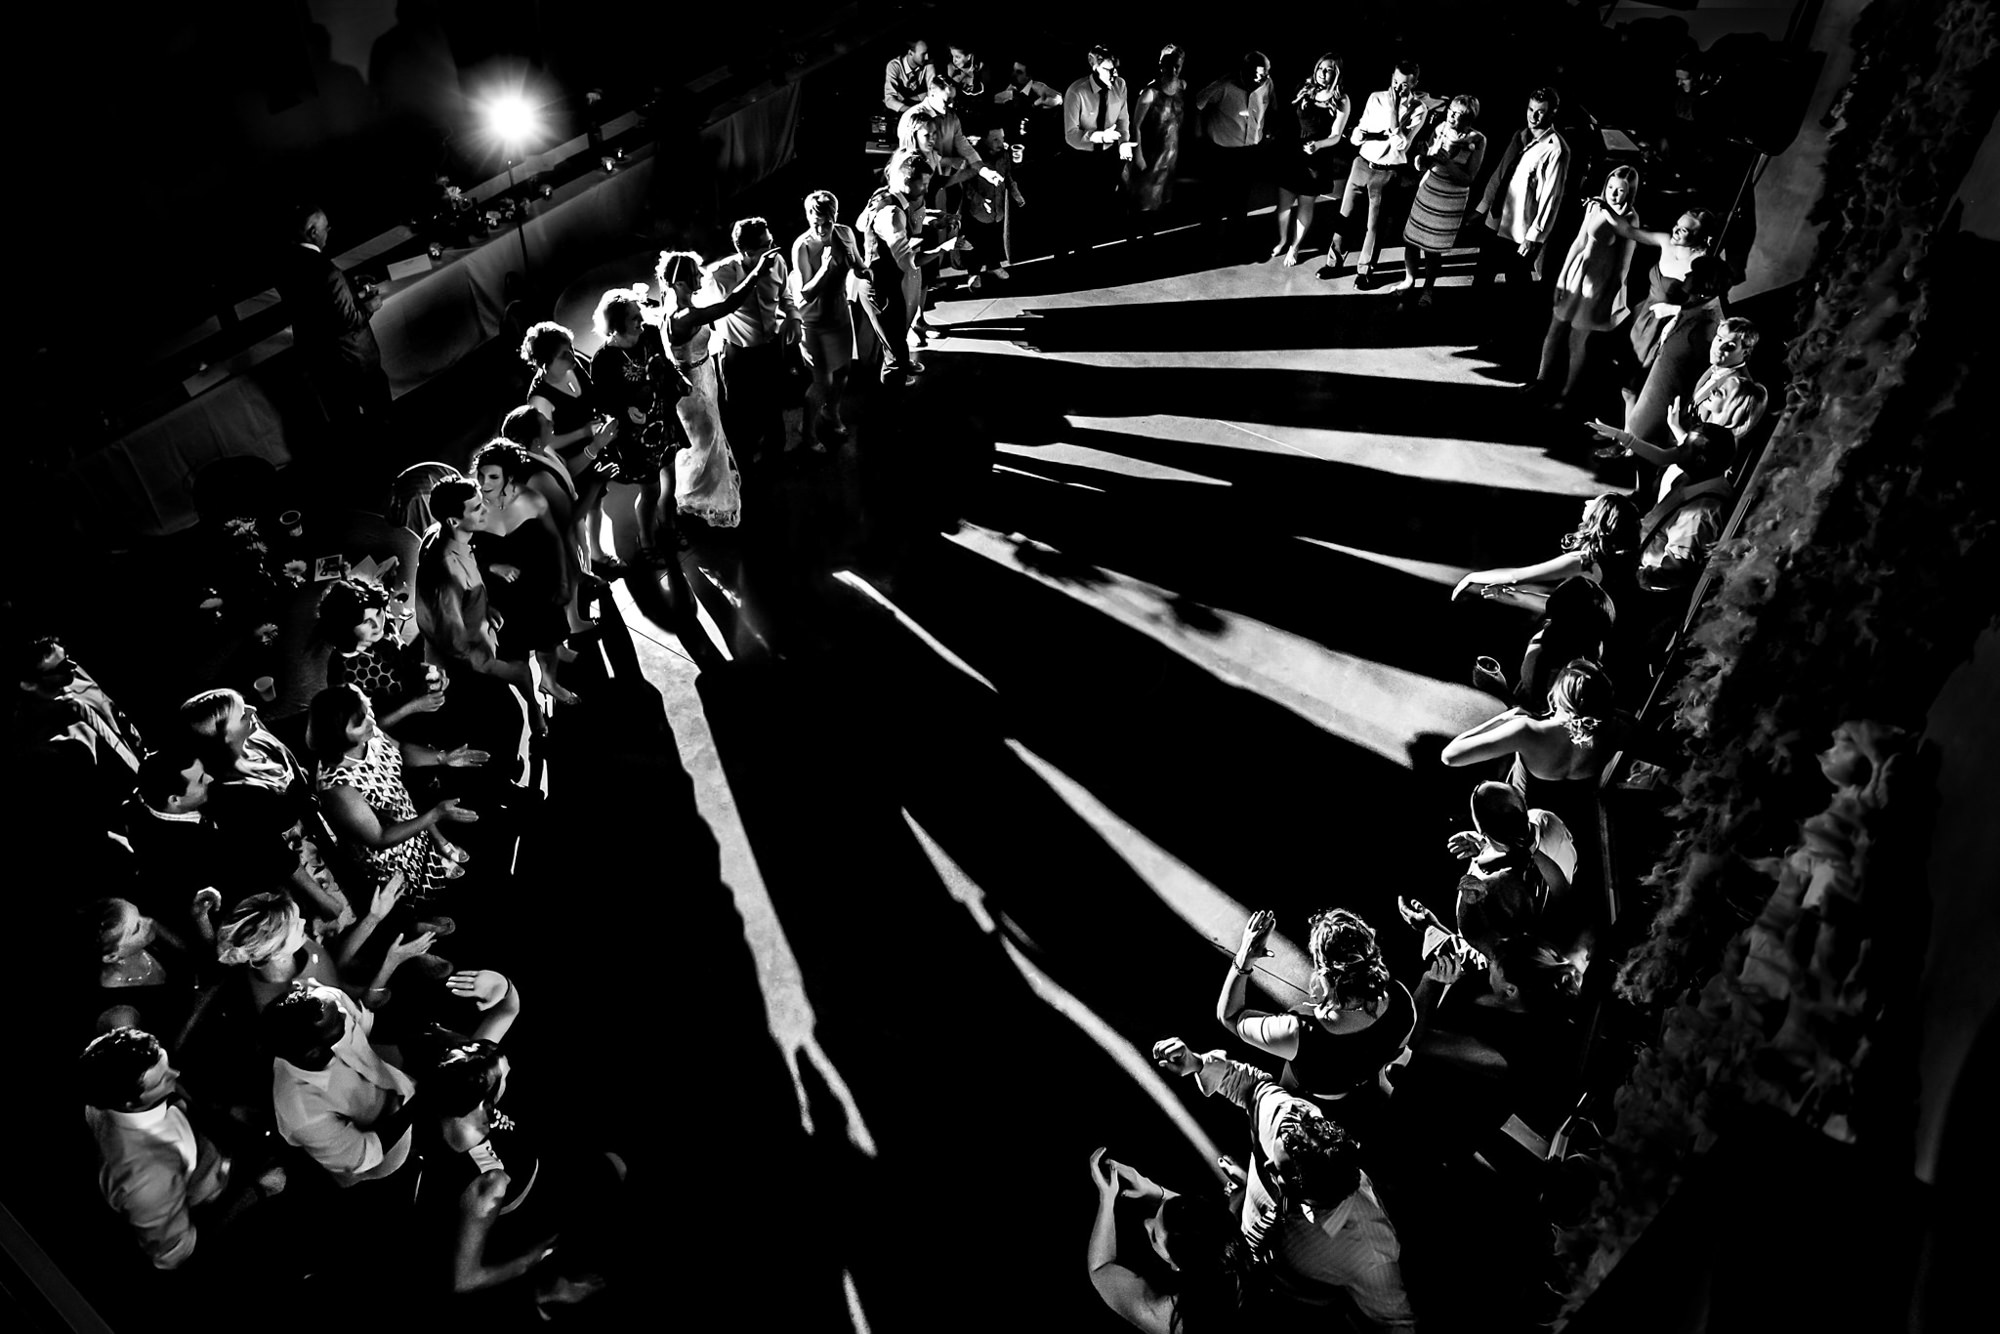 Guests form circle for hora dance - photo by Two Mann Studios